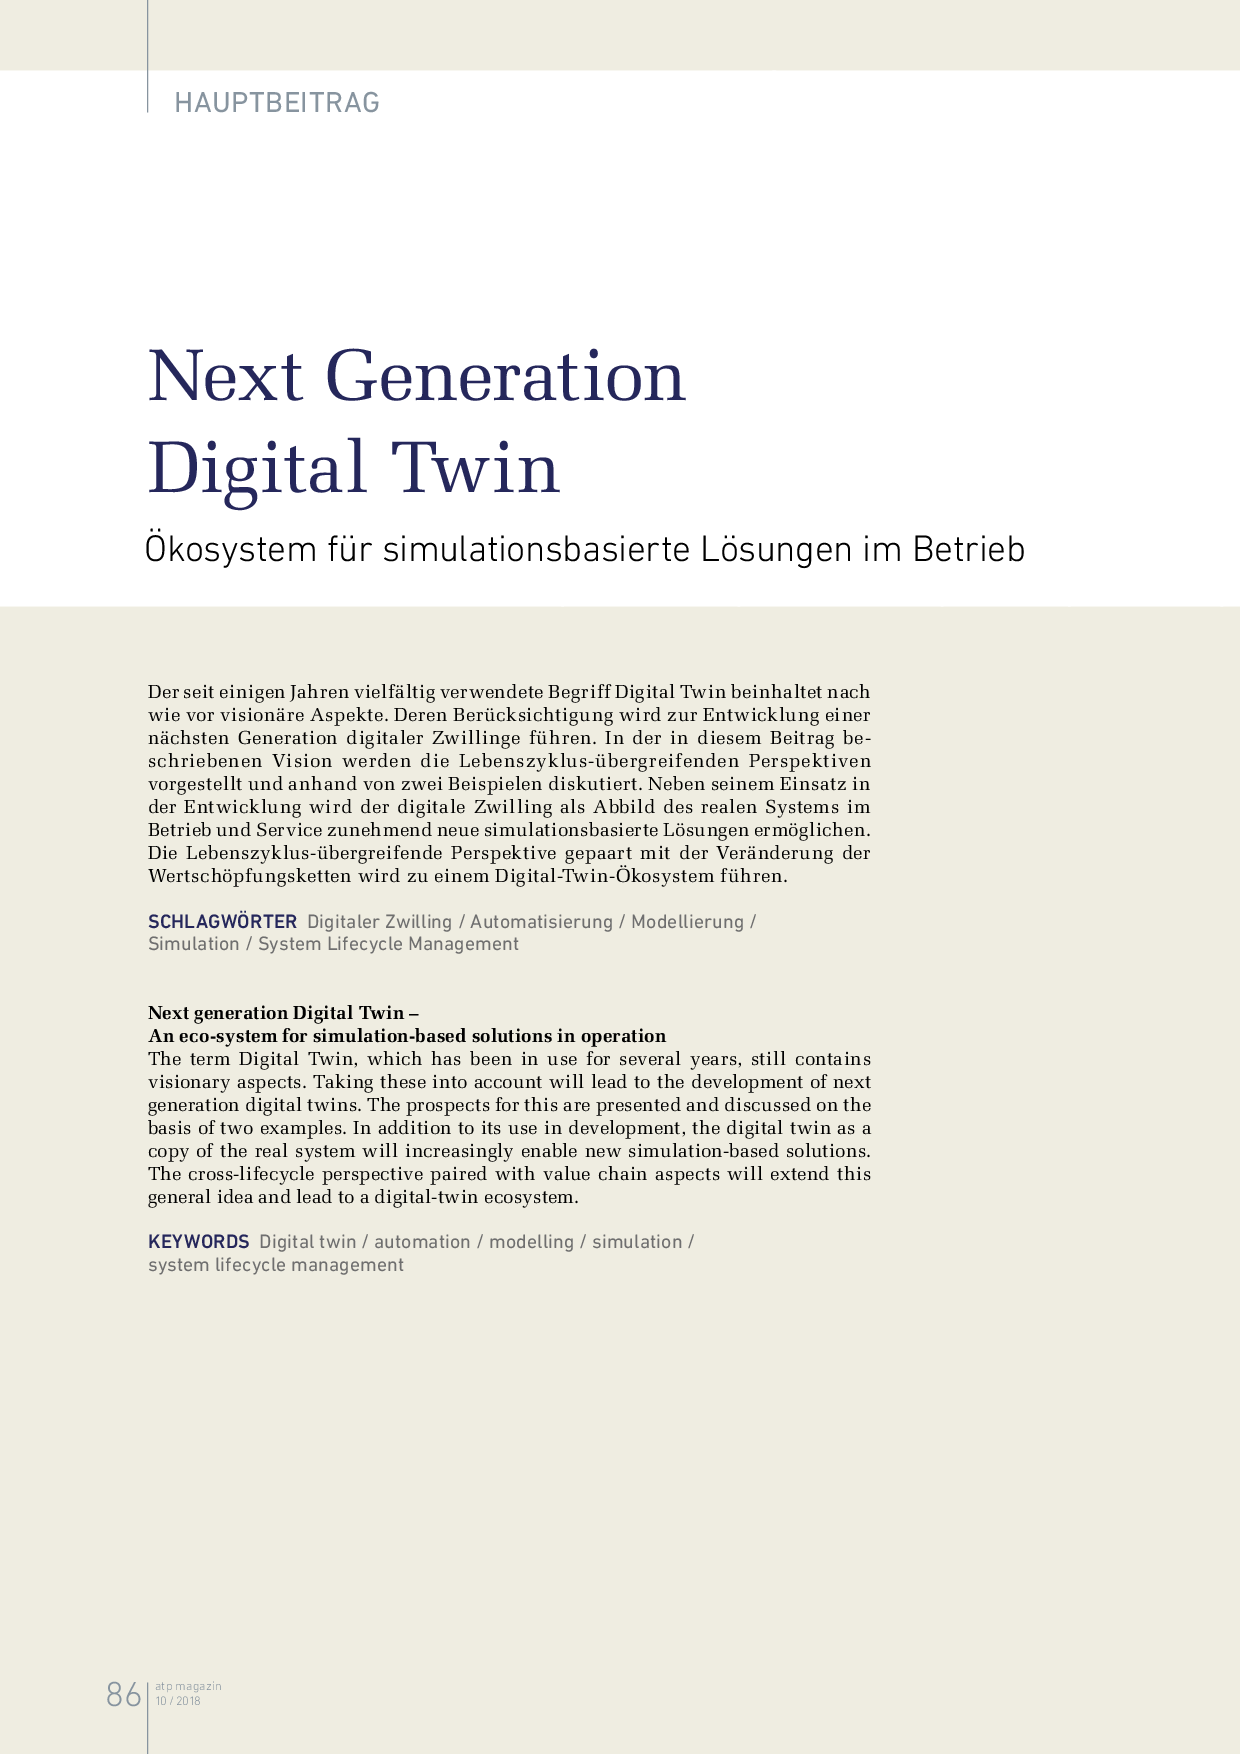 Next Generation Digital Twin